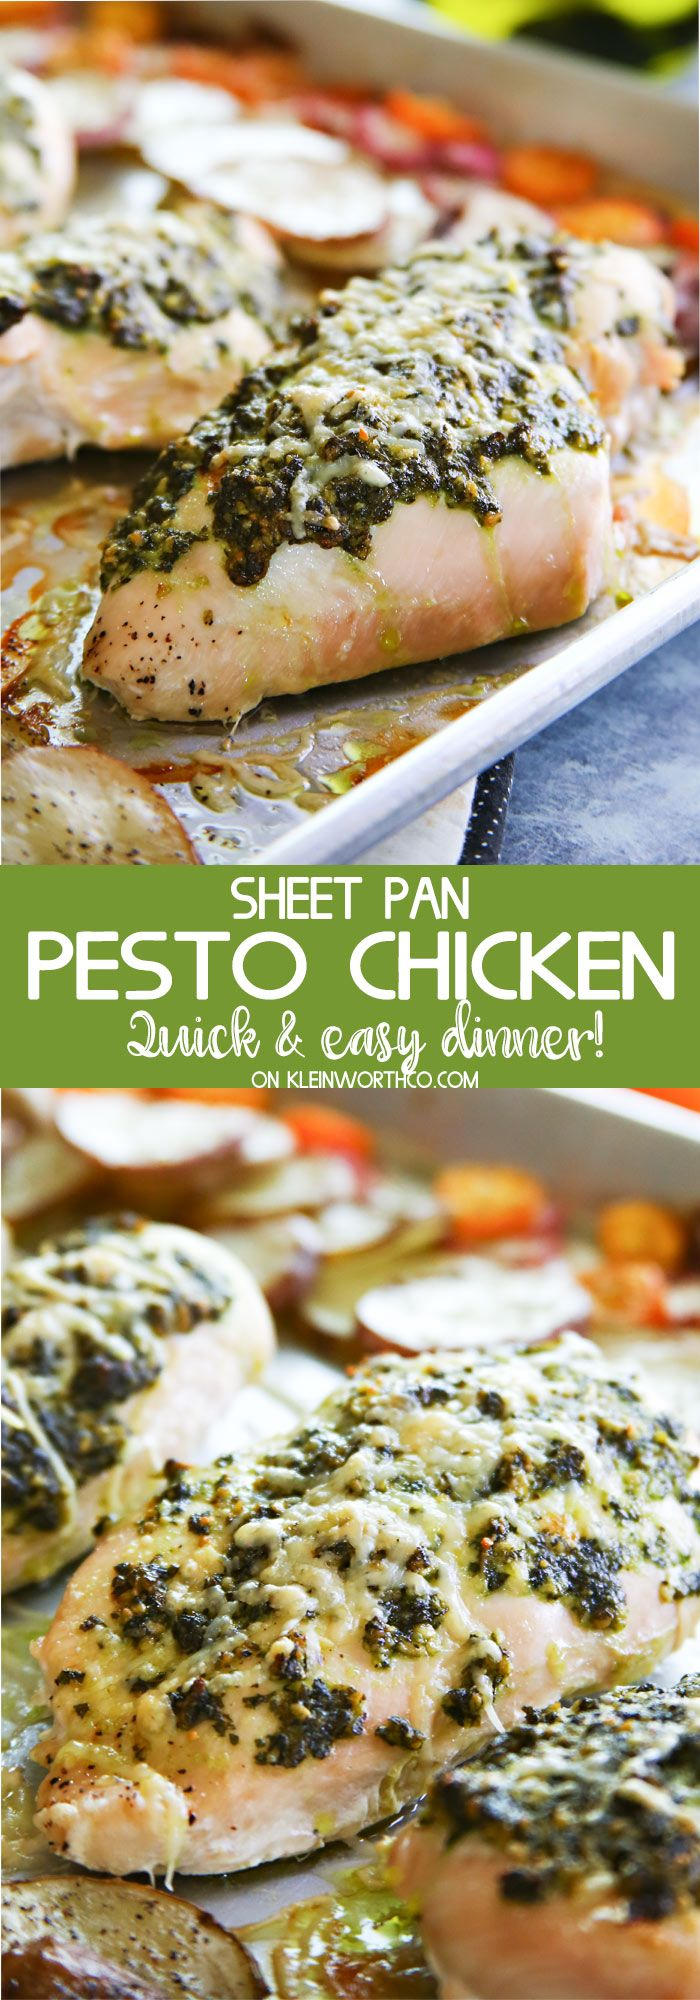 Sheet Pan Pesto Chicken Dinner is a healthier supper recipe the whole family will love. Delicious baked chicken & roasted radishes, kumquats & potatoes-YUM! via @KleinworthCo